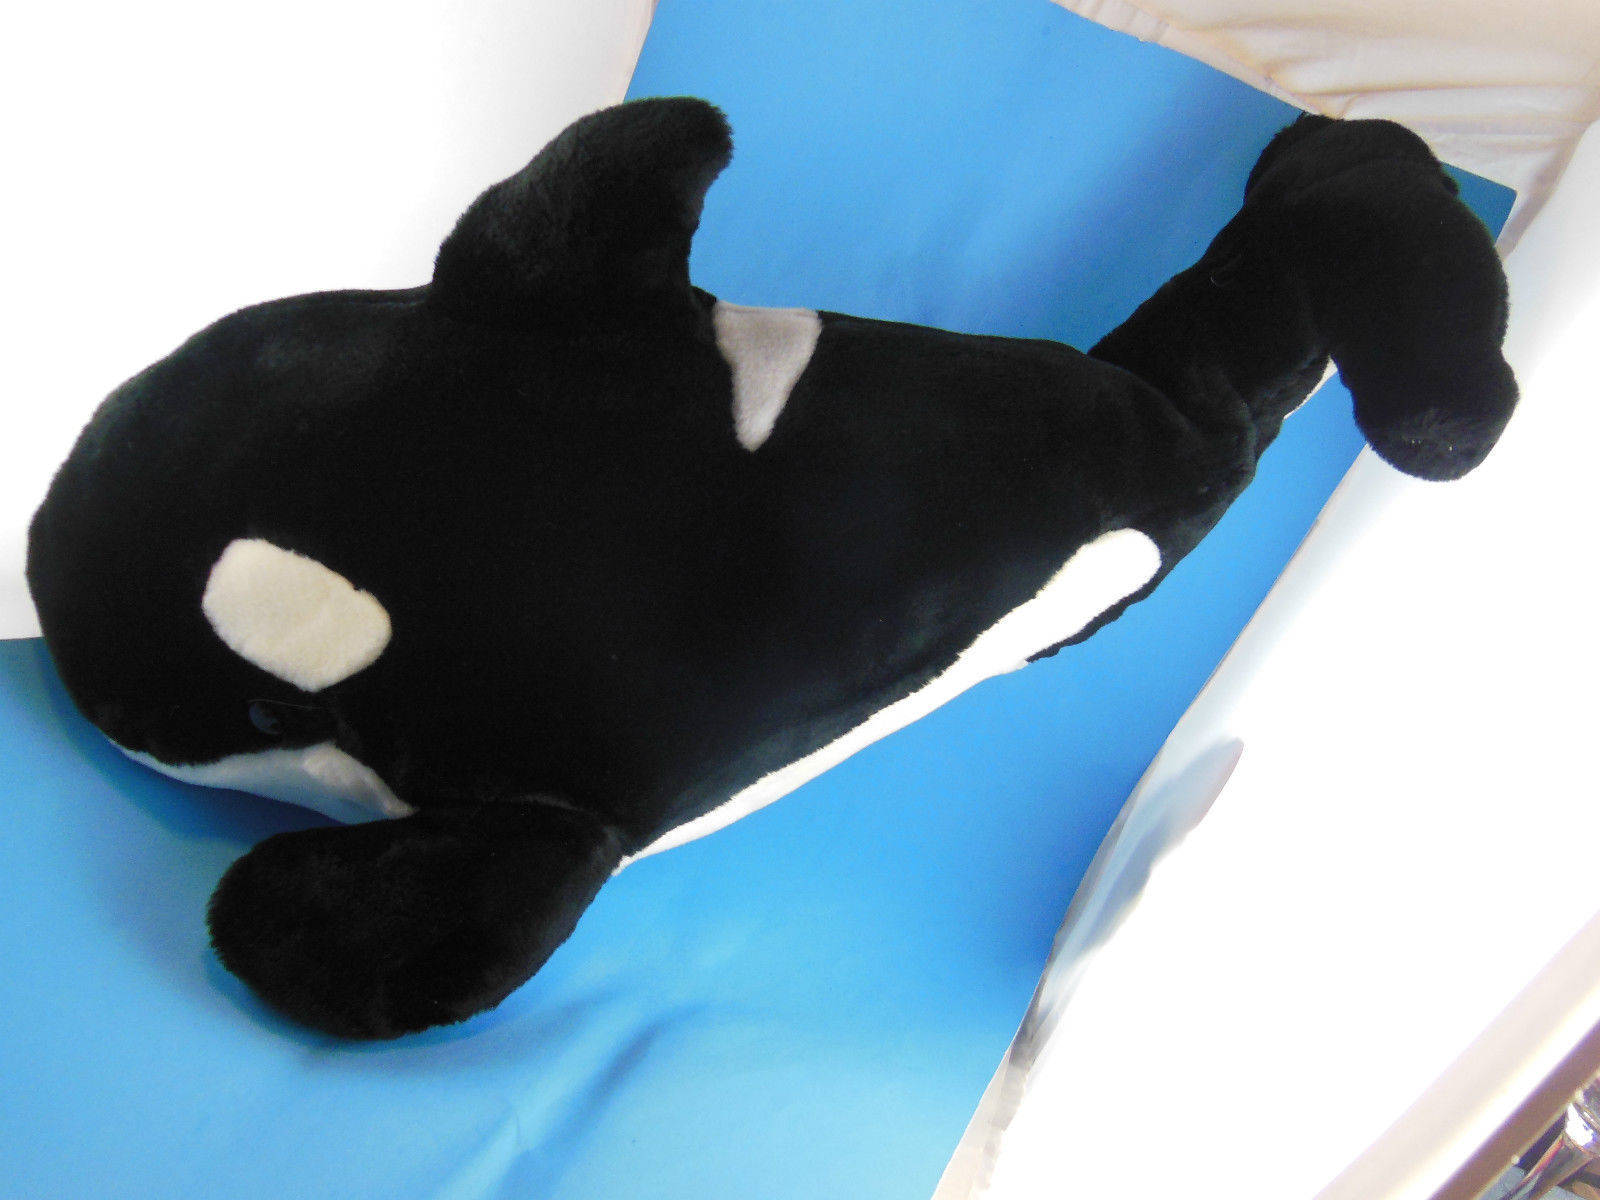 "Primary image for Sea World Souvenir Killer Whale Orca Plush 21"" plus beverage container w straw"